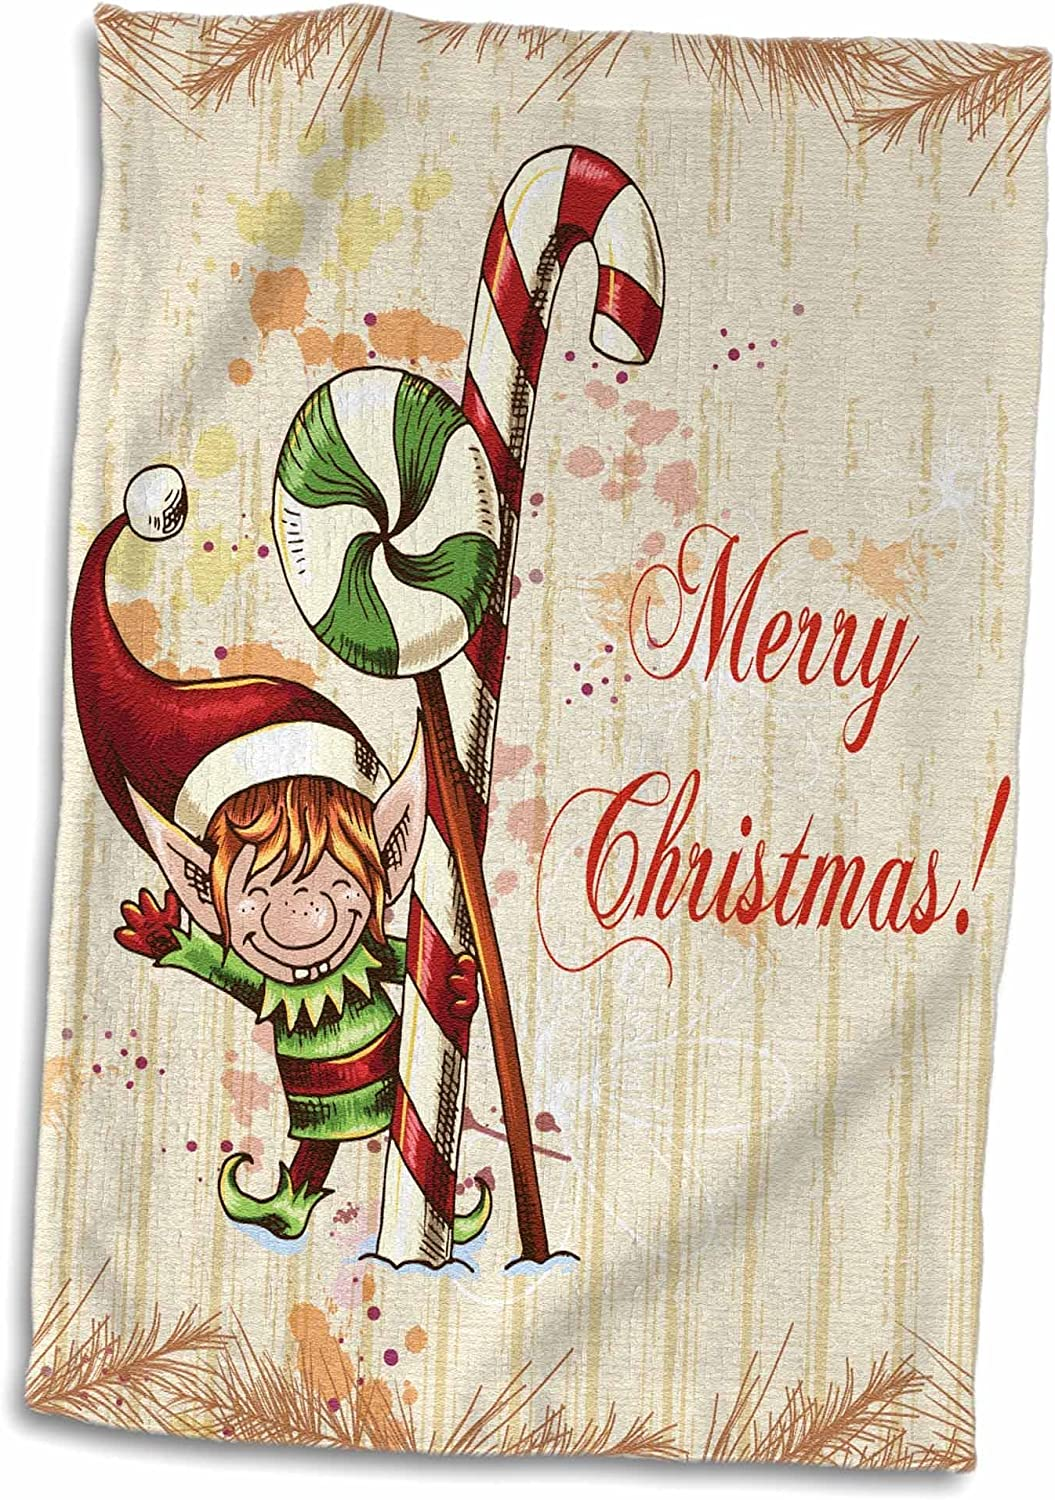 3D Rose Cute Elf Peppermint Candy Cane Merry Christmas Xmas Holiday Greeting Hand//Sports Towel 15 x 22 Multicolor